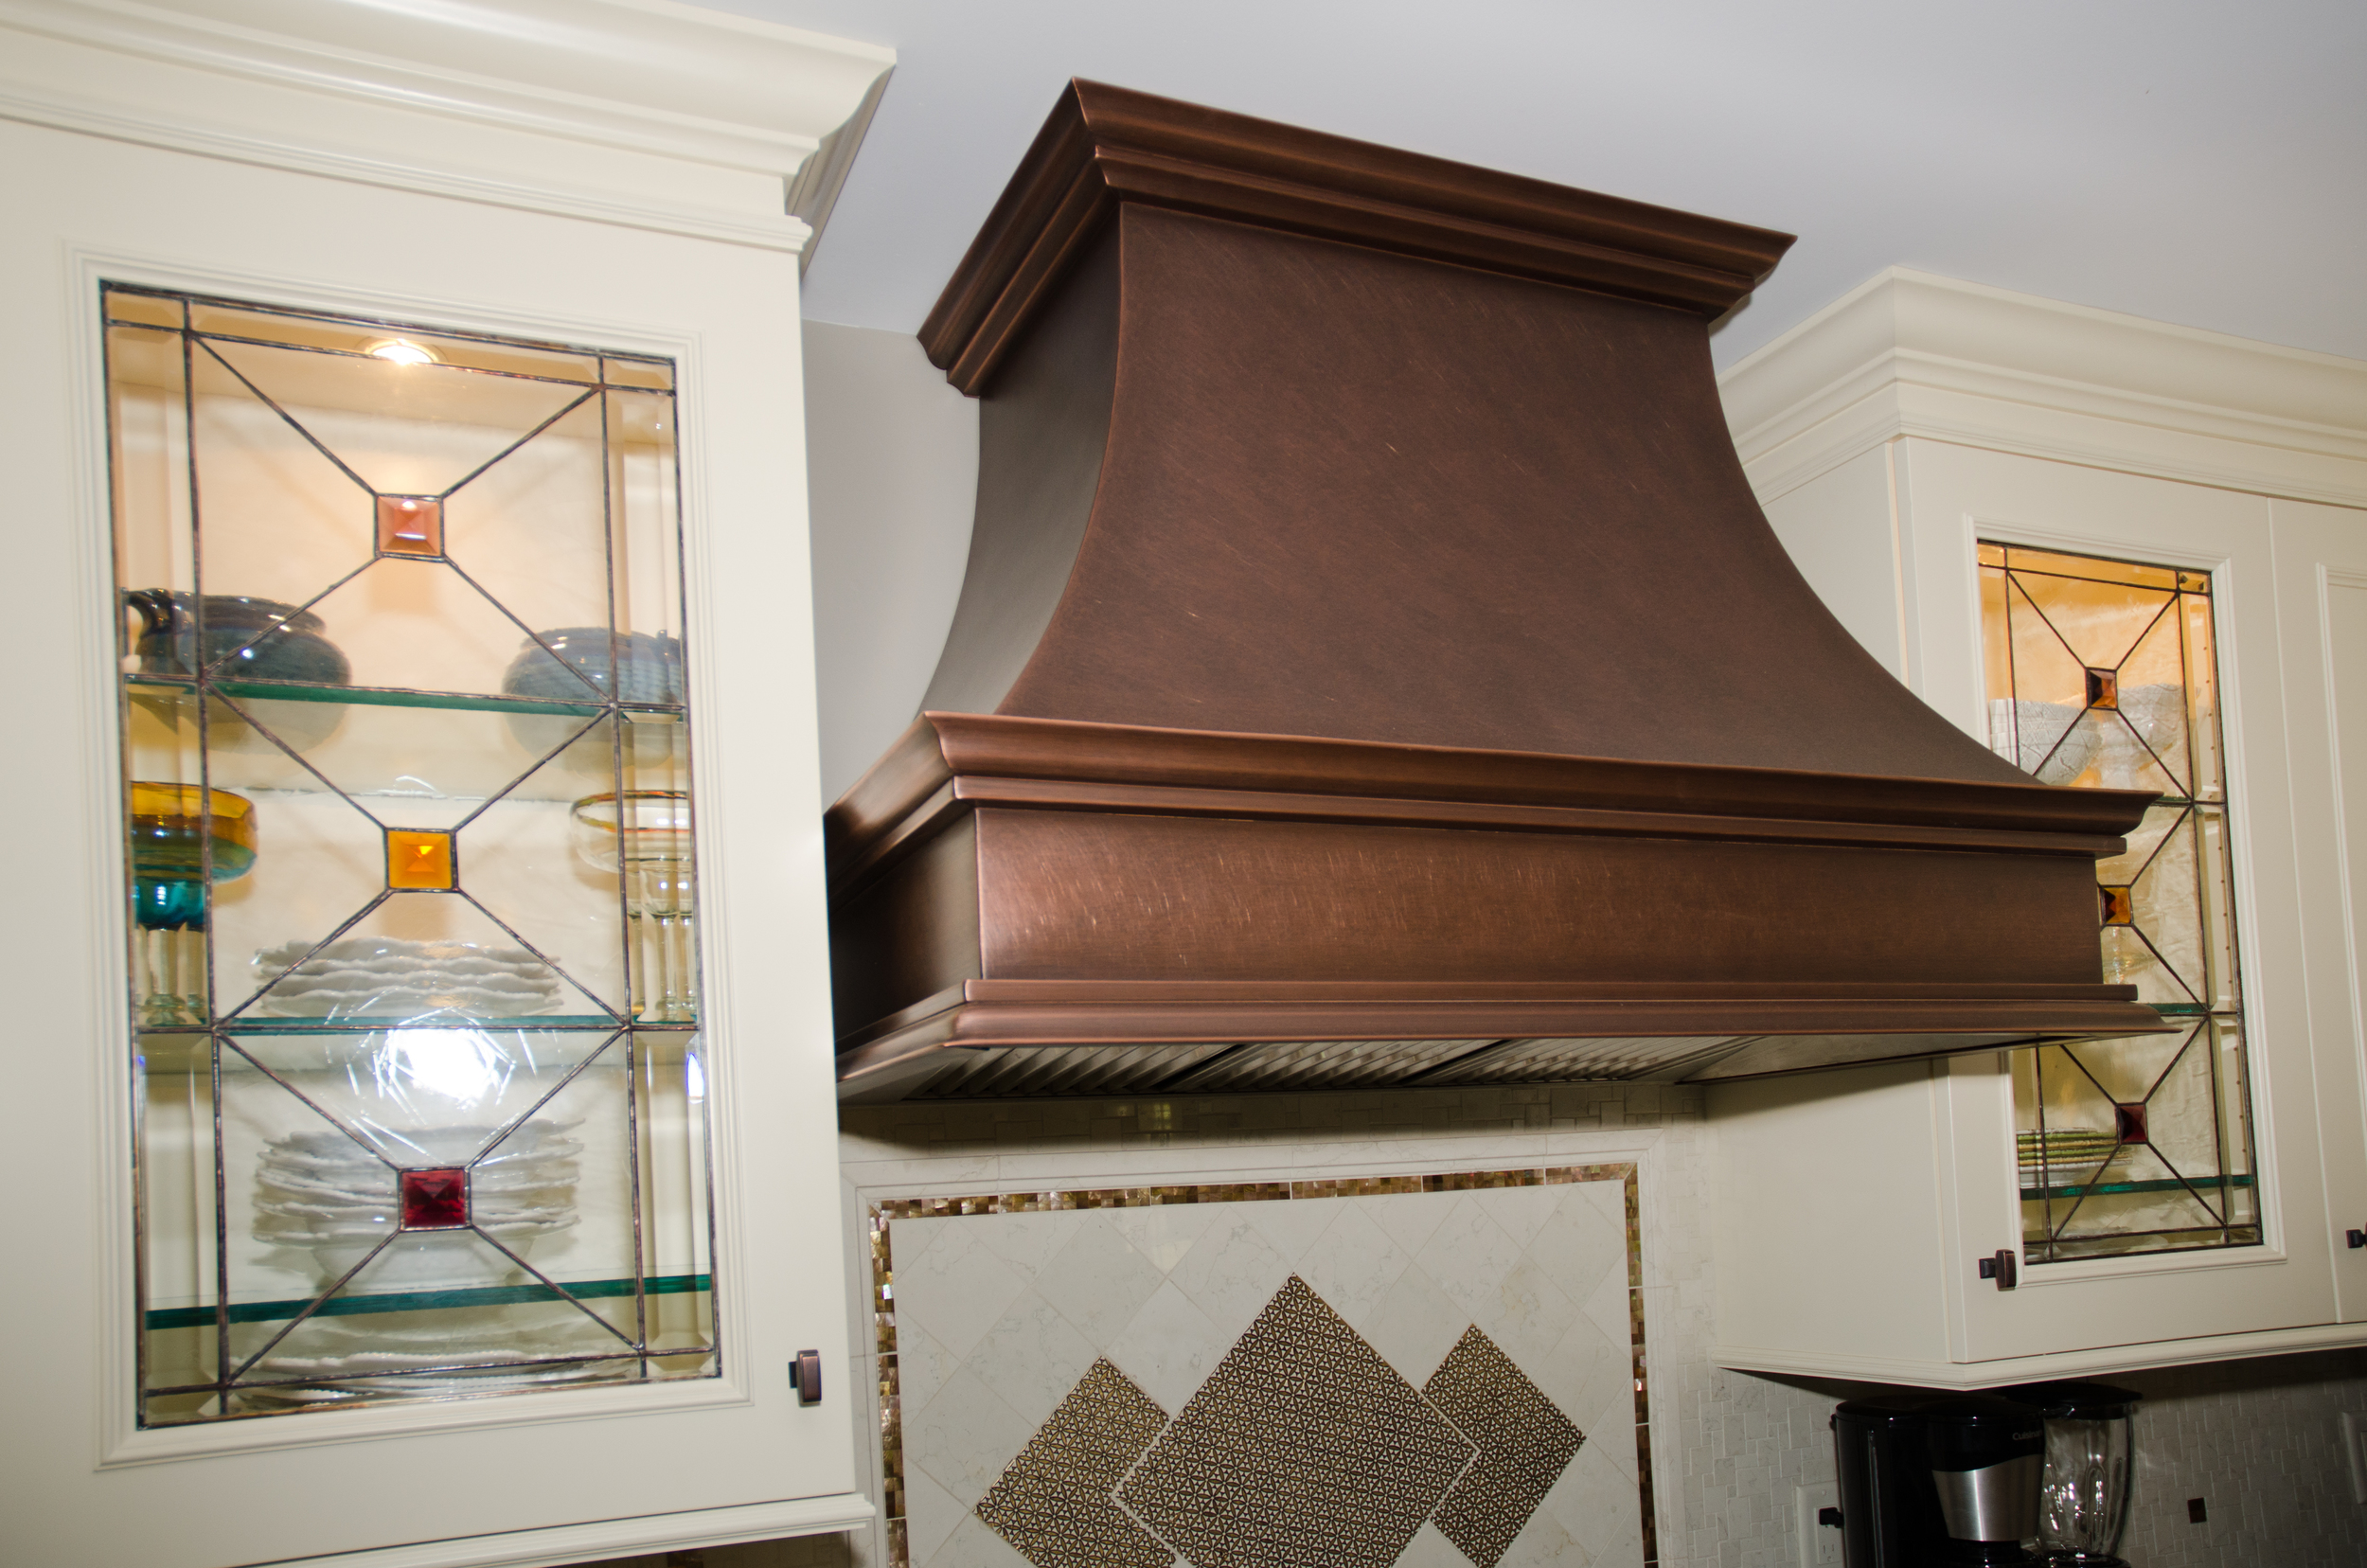 Wood Mode kitchen installation by Groundswell Contracting with Range Craft copper range hood